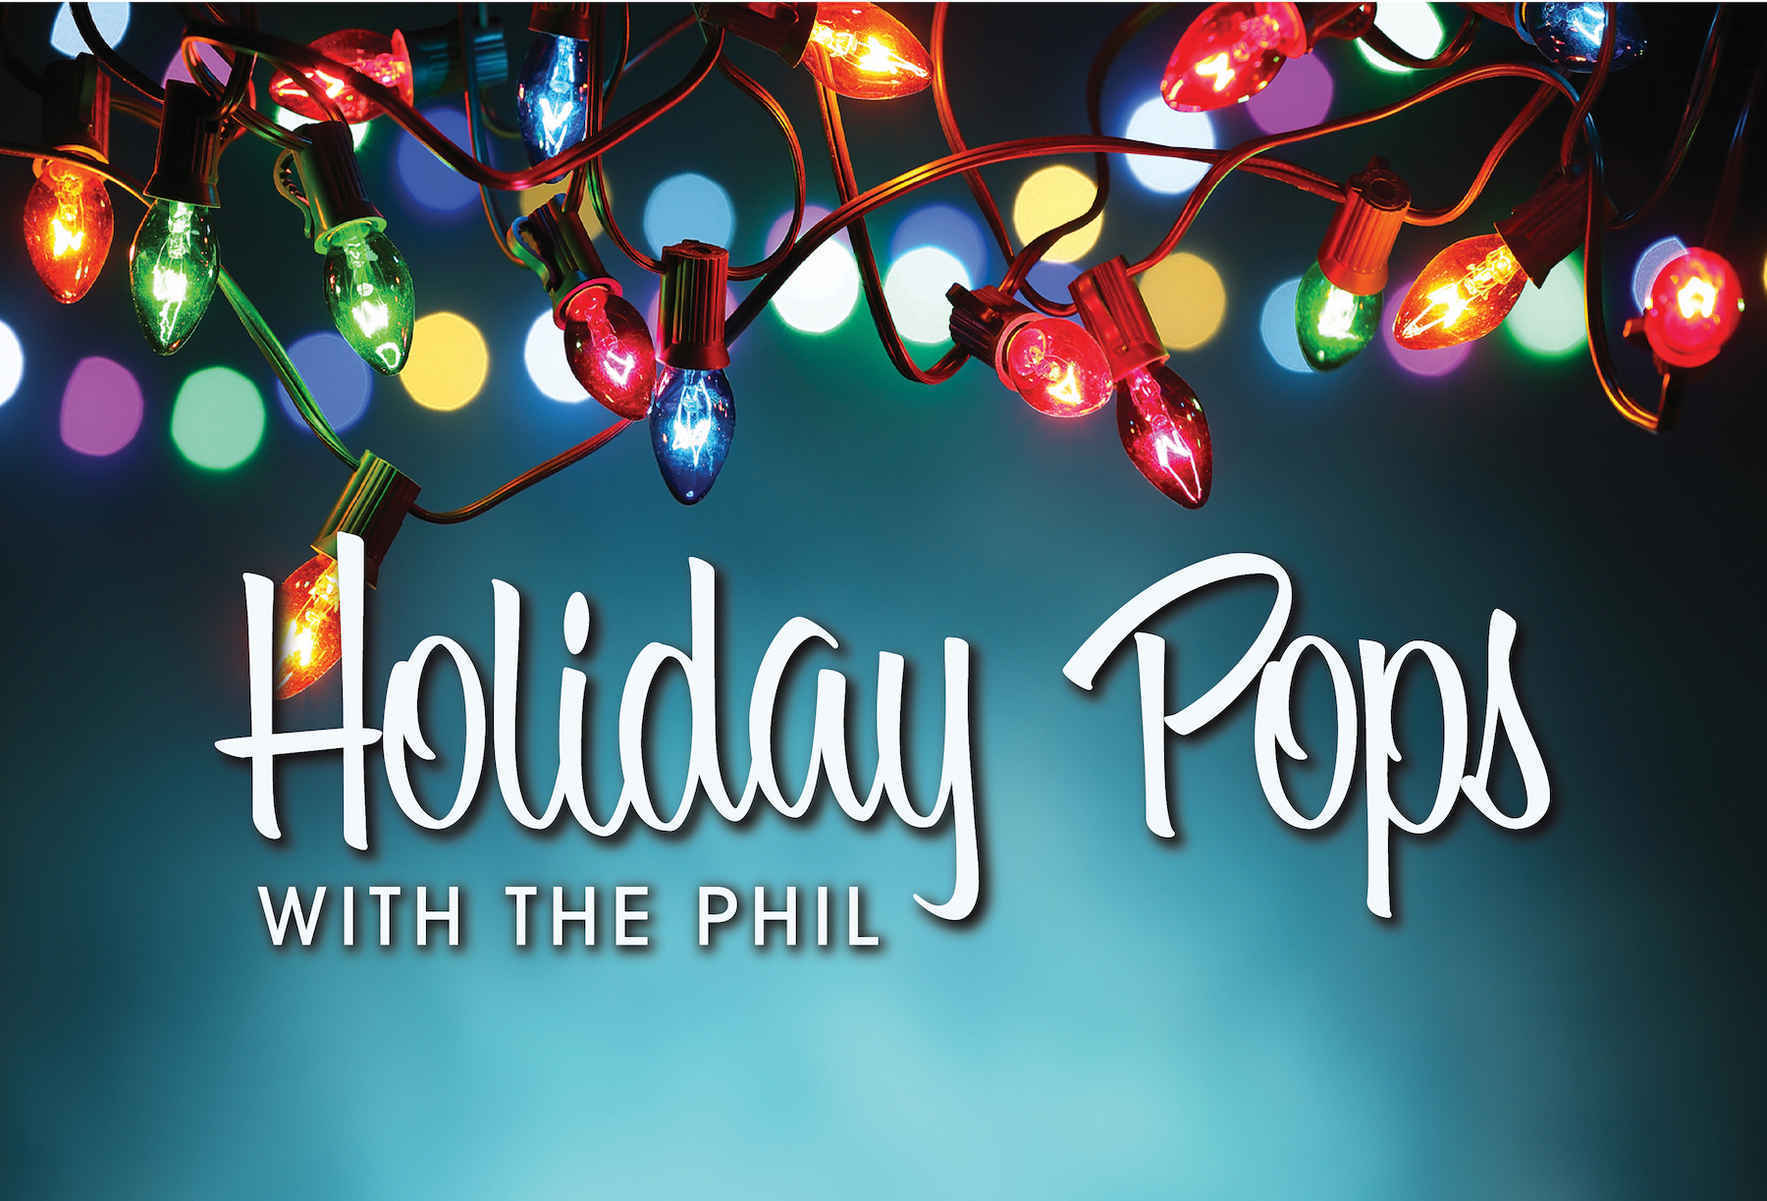 Holiday Pops with the Phil - 6:00PM image